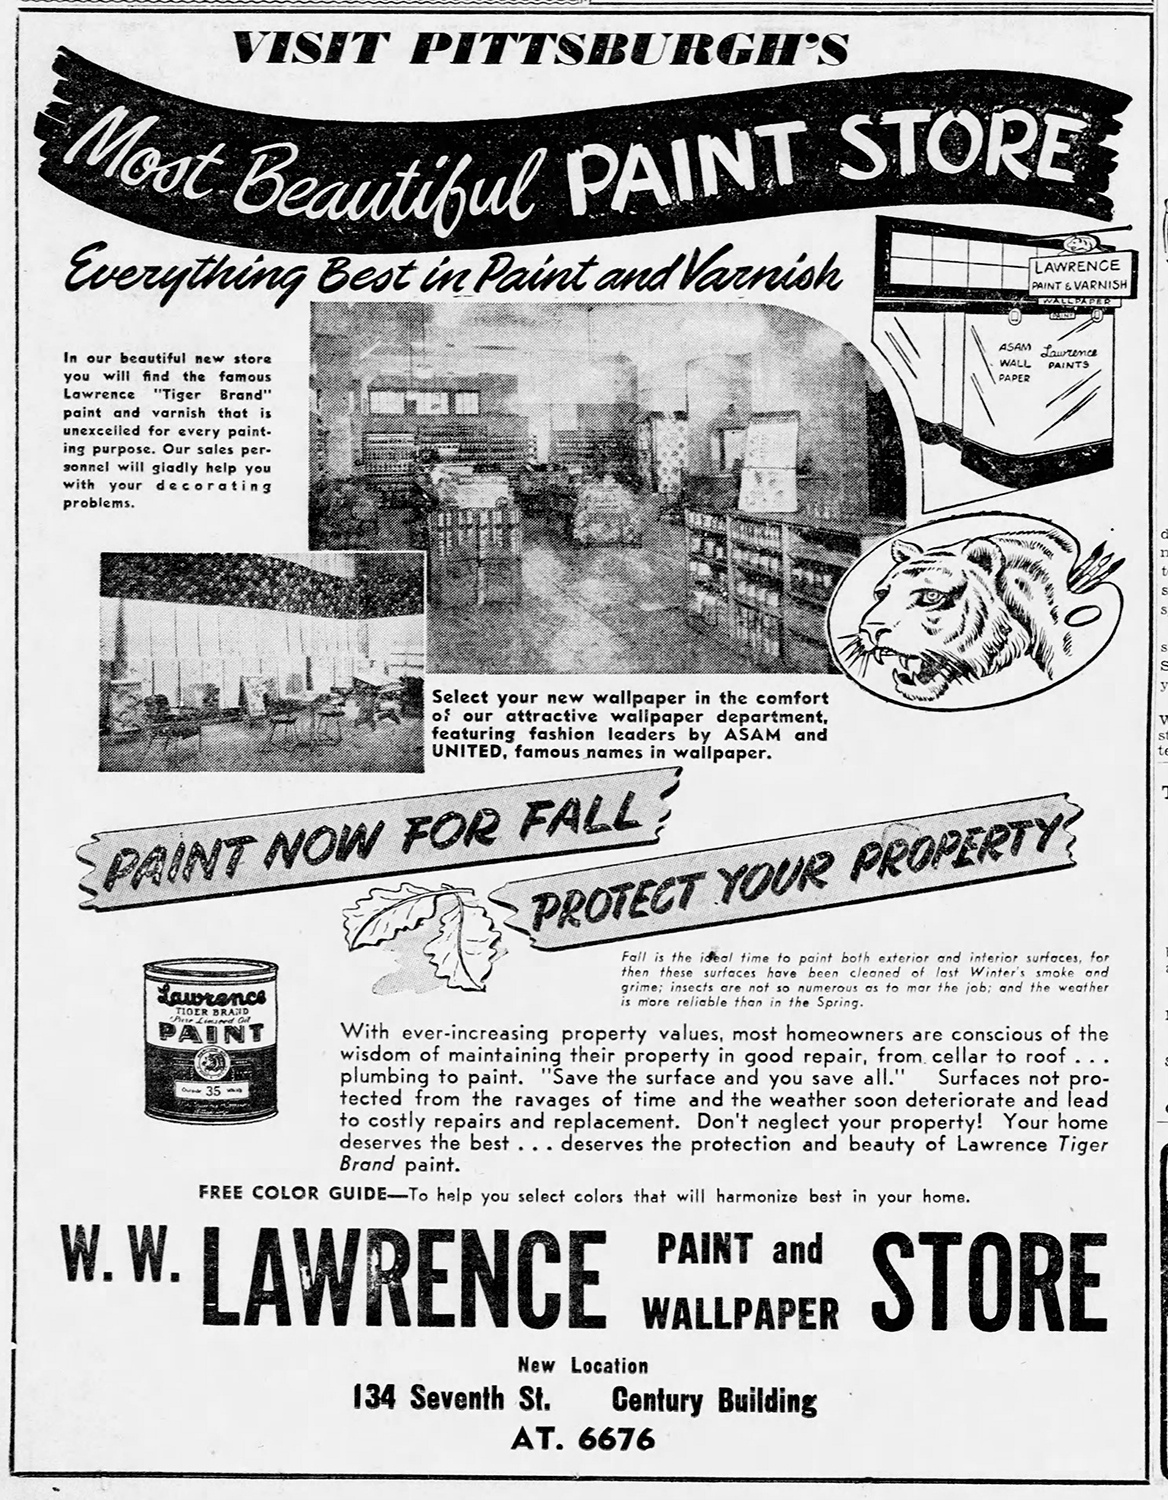 Advertisement with interior views of the W.W. Lawrence paint and wallpaper store that was located downtown in the Century Building. The Pittsburgh Press, September 21, 1947.